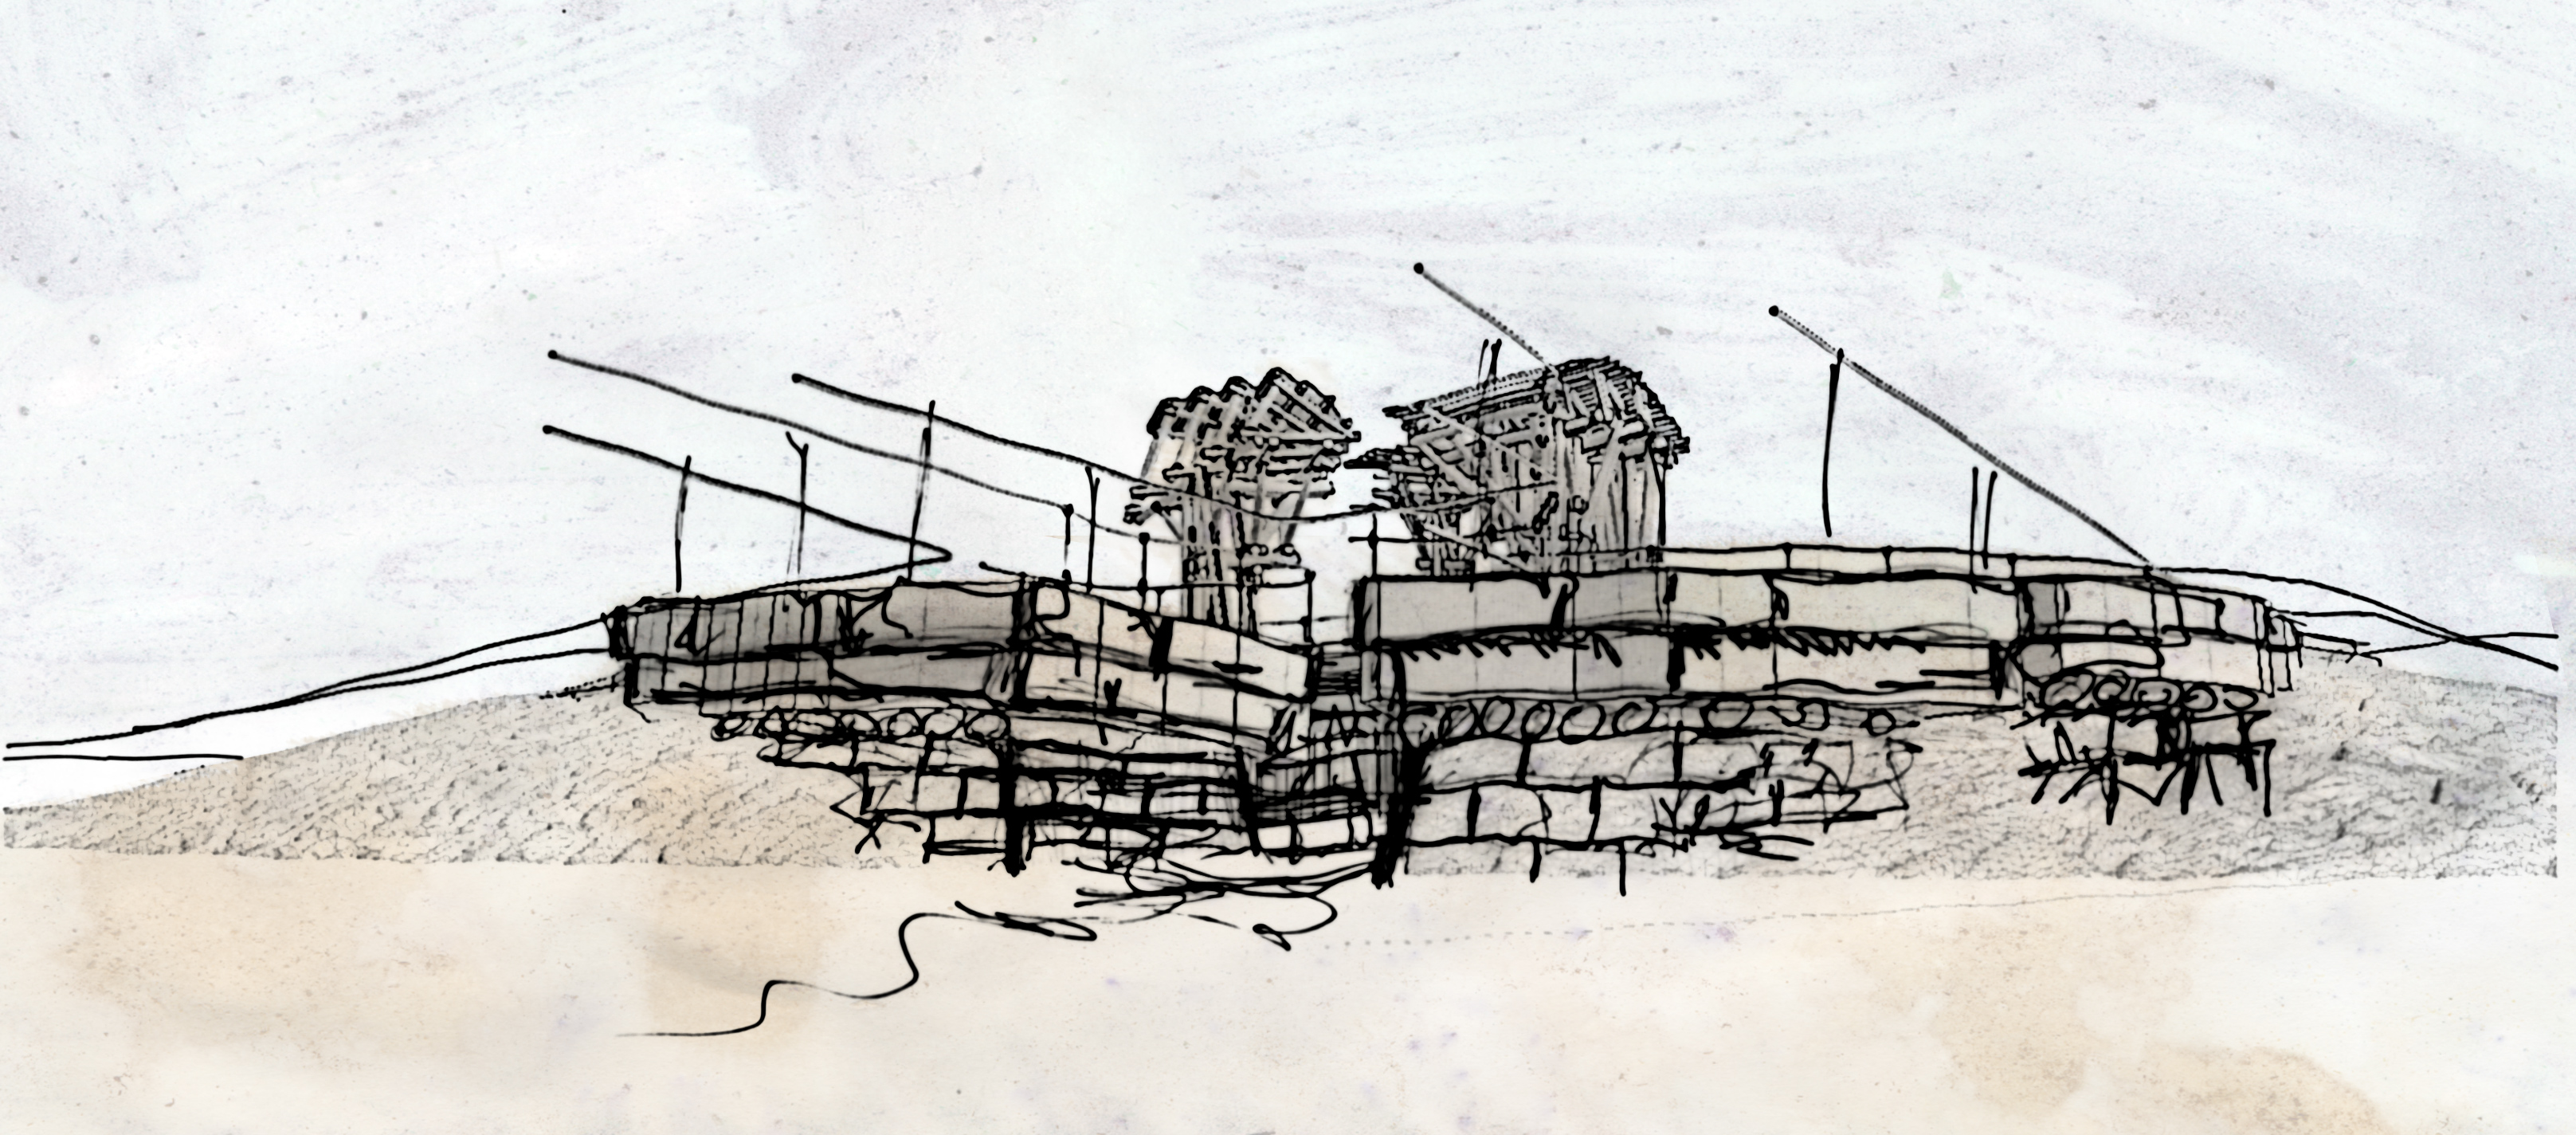 Future Monument (2009) bermed pond concept sketch